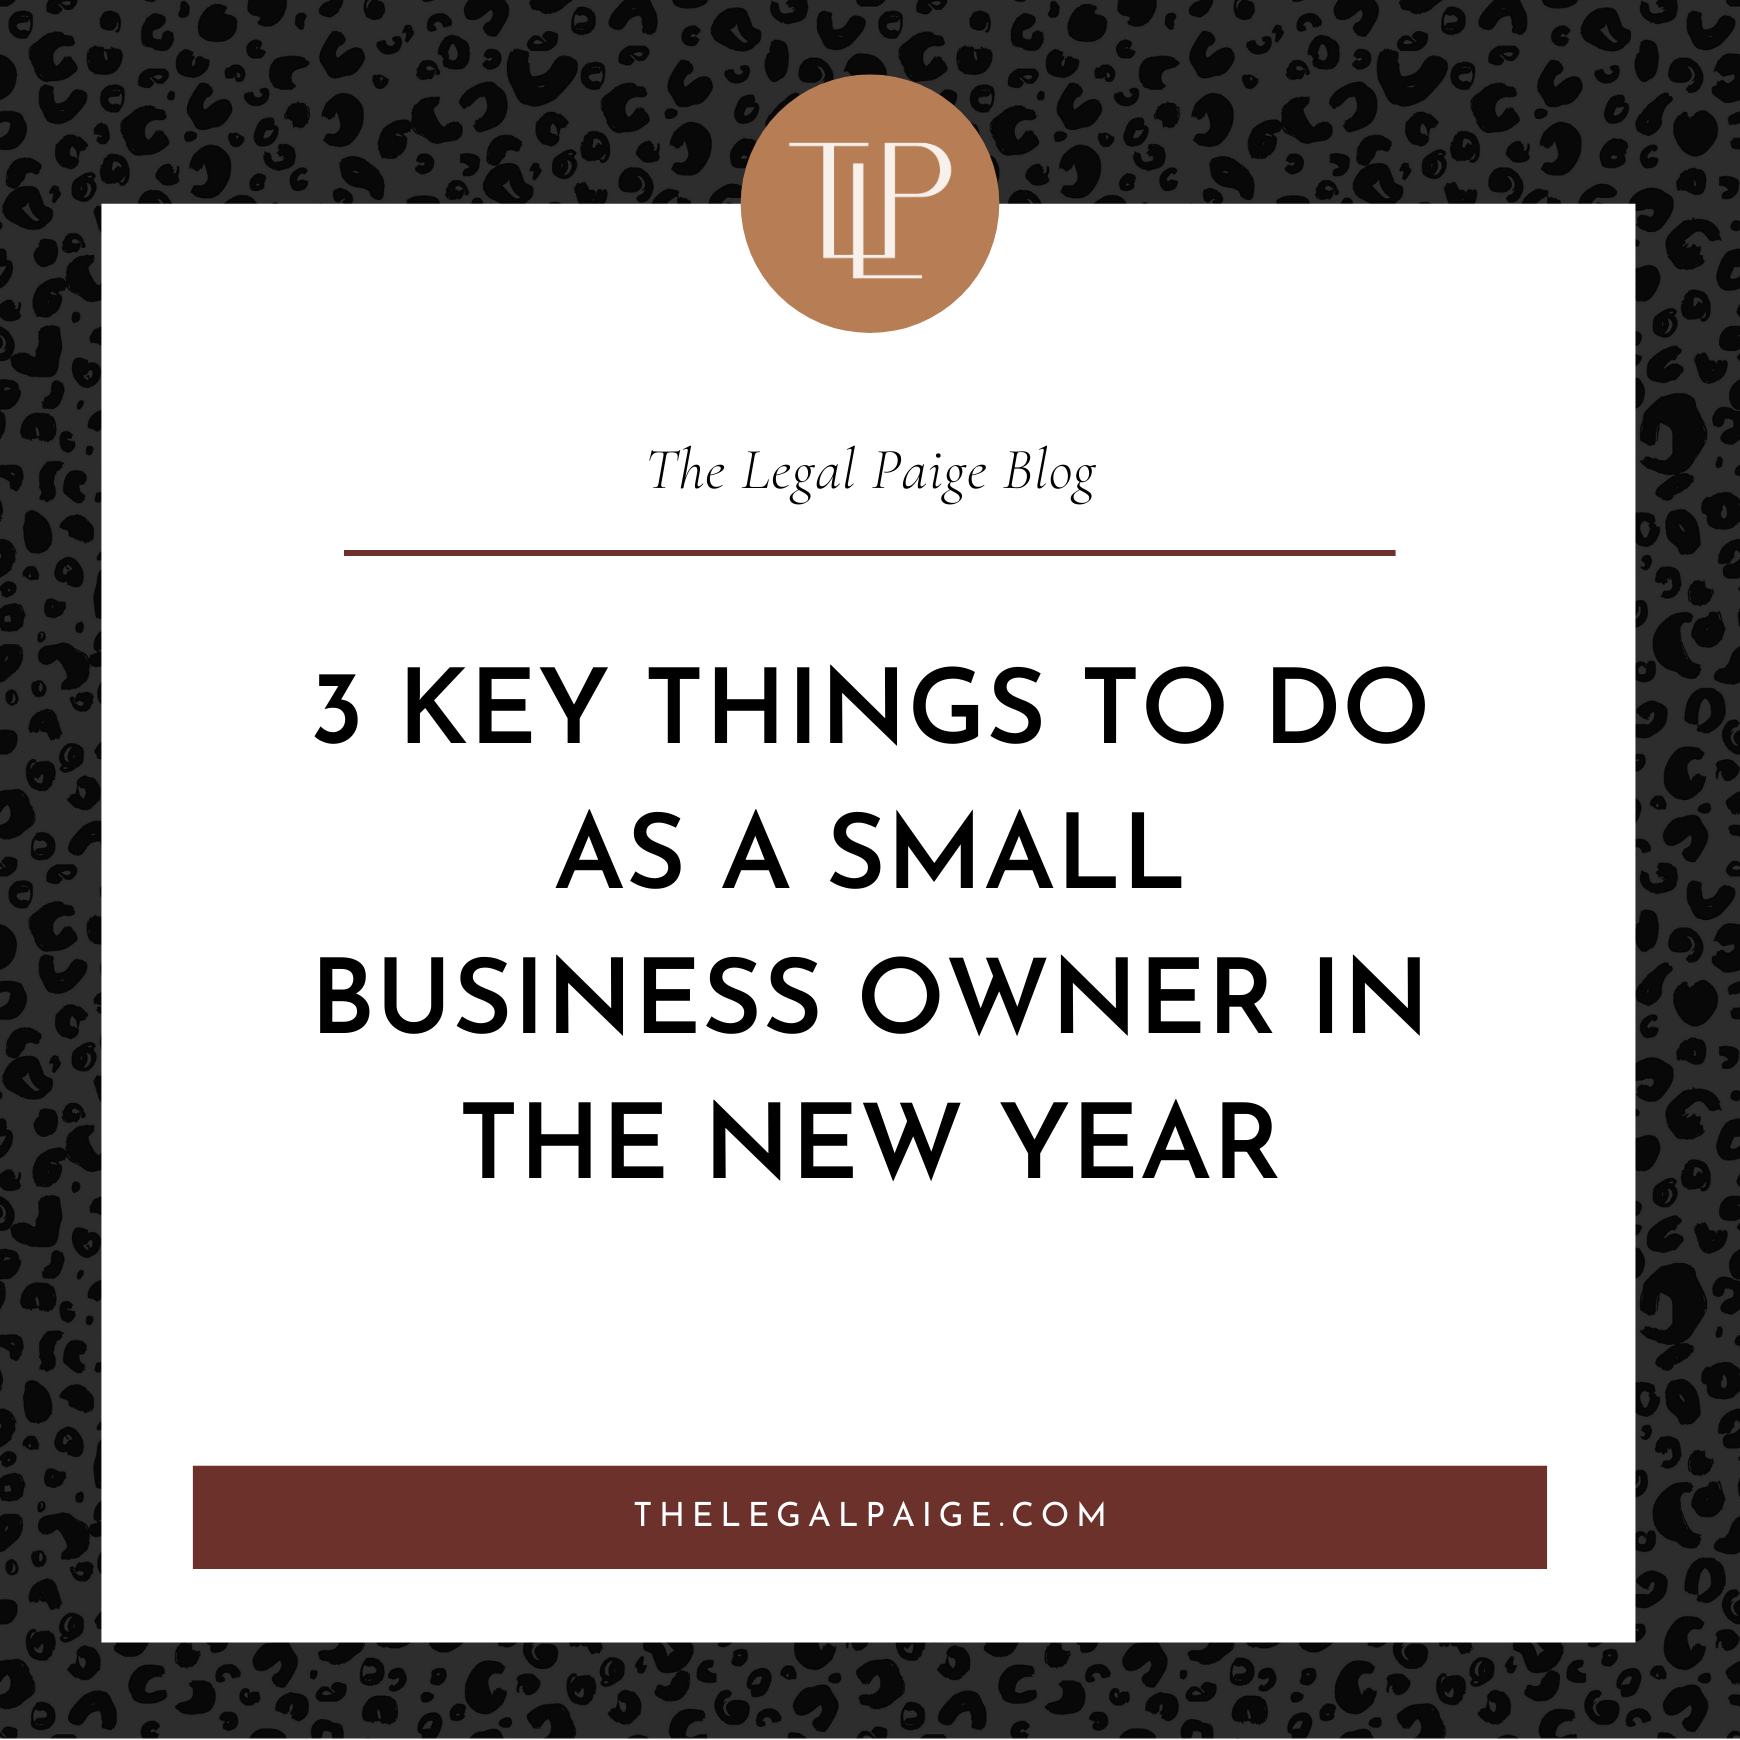 3 Key Things To Do As A Small Business Owner In The New Year